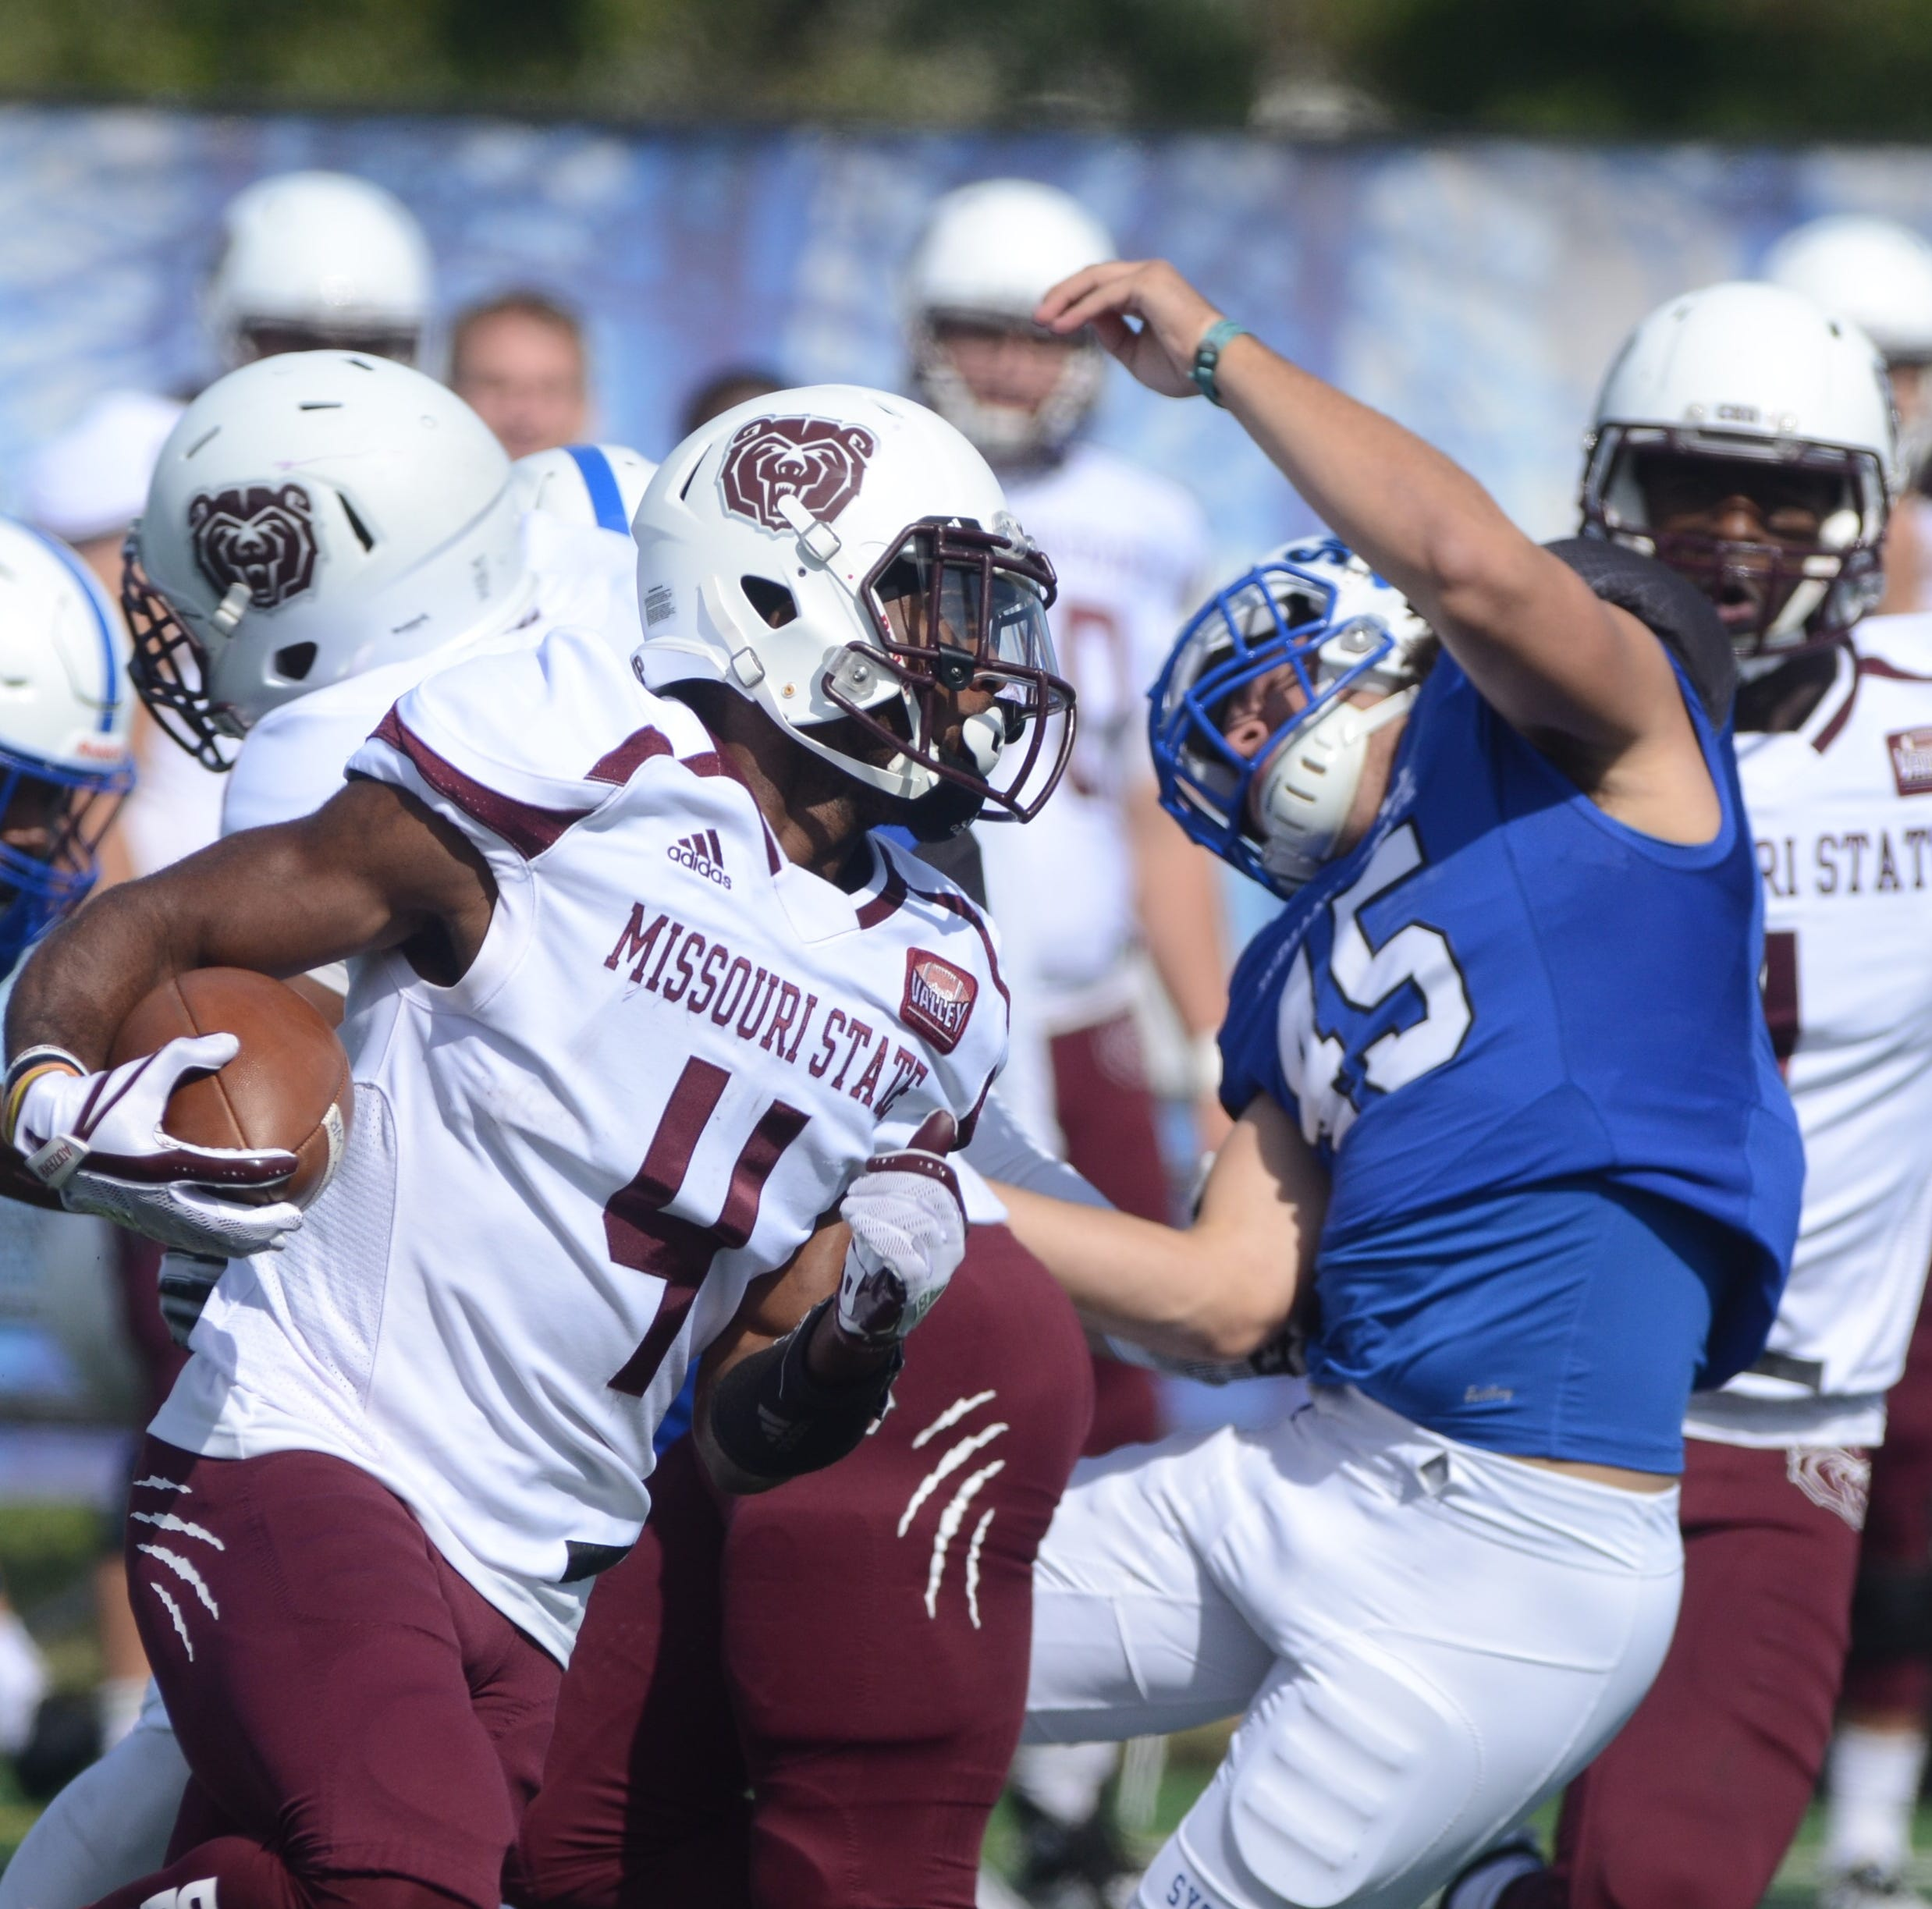 Missouri State survives at Indiana State with go-ahead touchdown in final seconds